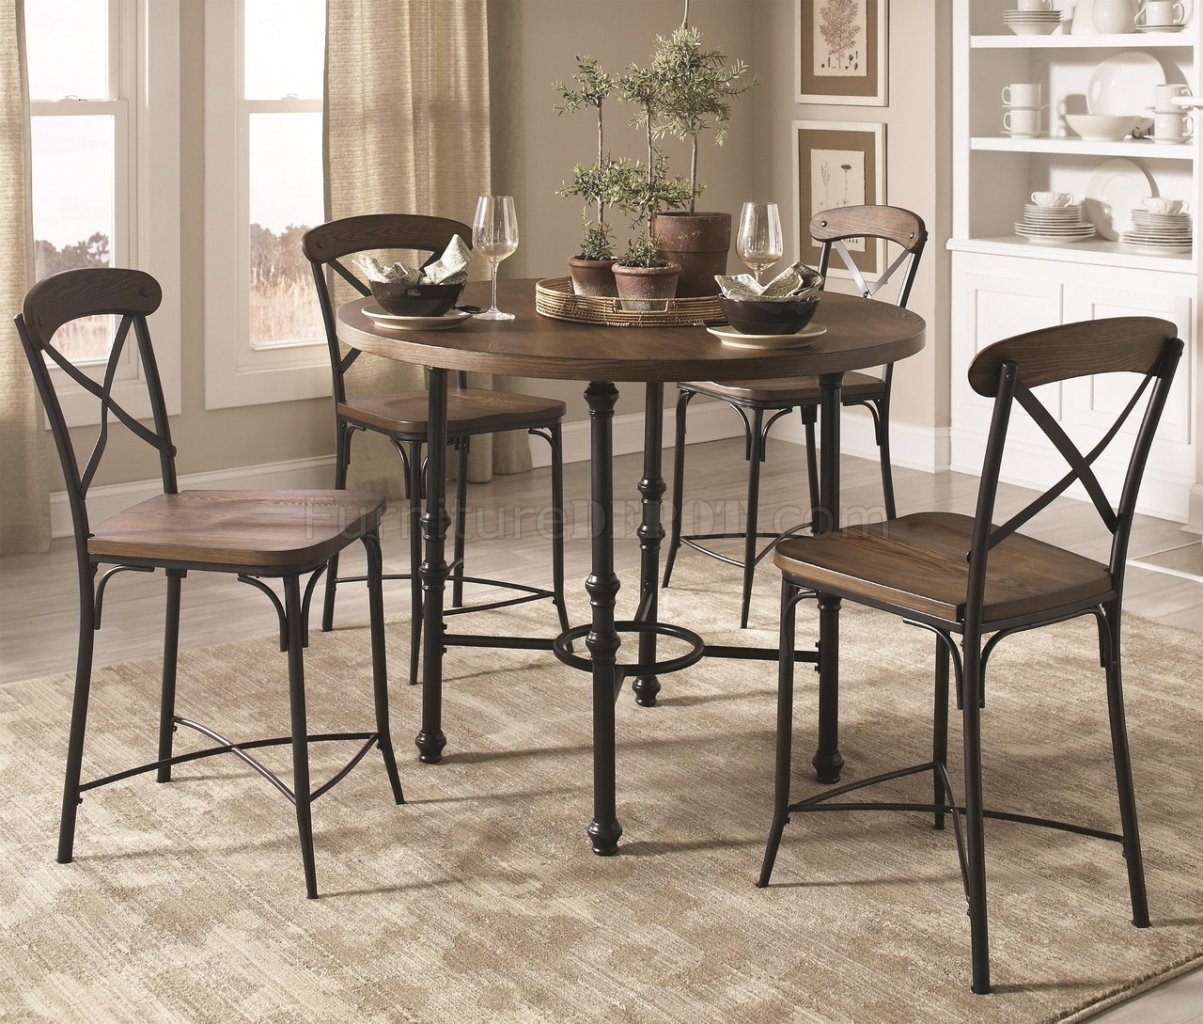 105618 Monticello 5Pc Counter Height Dining Set By Coaster